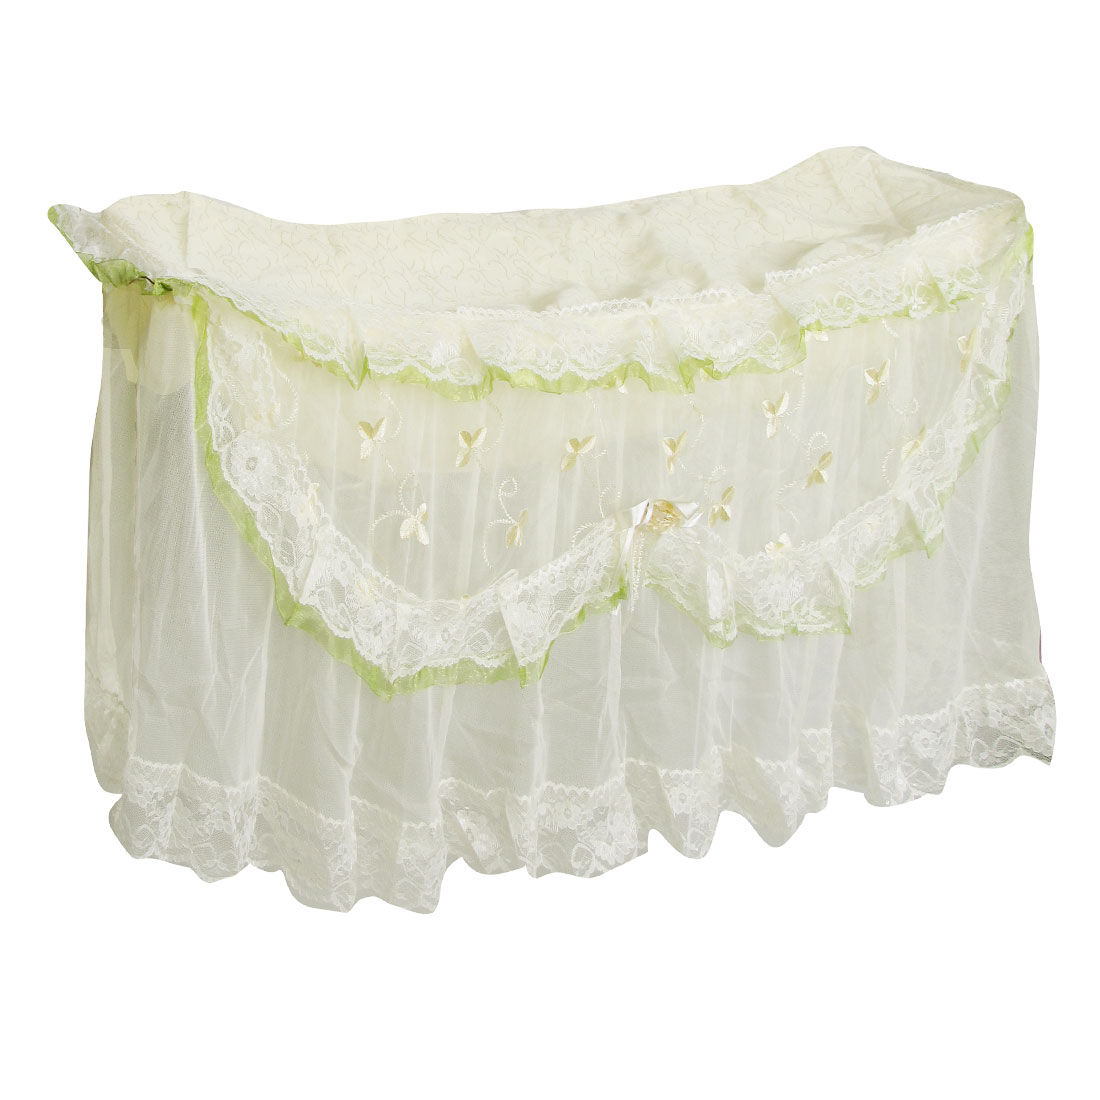 Lemon Yellow Flower Decor Ivory Lace Overlay Wall Mounted Air Conditioner Cover